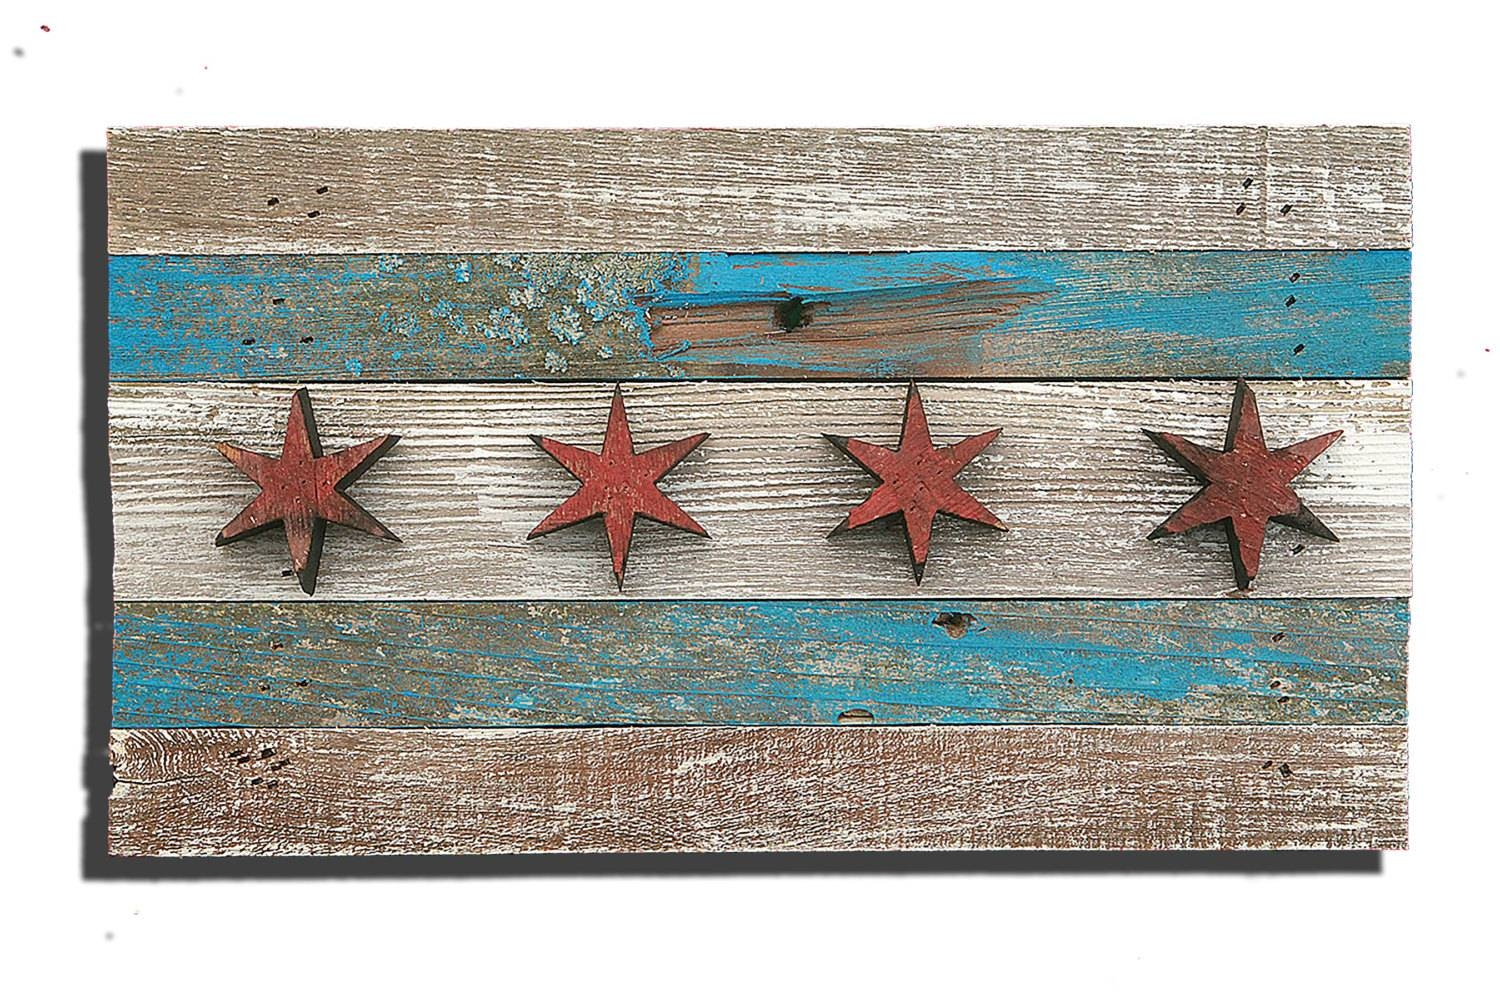 Handmade, Reclaimed Wooden Chicago Flag, Vintage, Art, Distressed Intended For Current Recycled Wall Art (View 16 of 30)